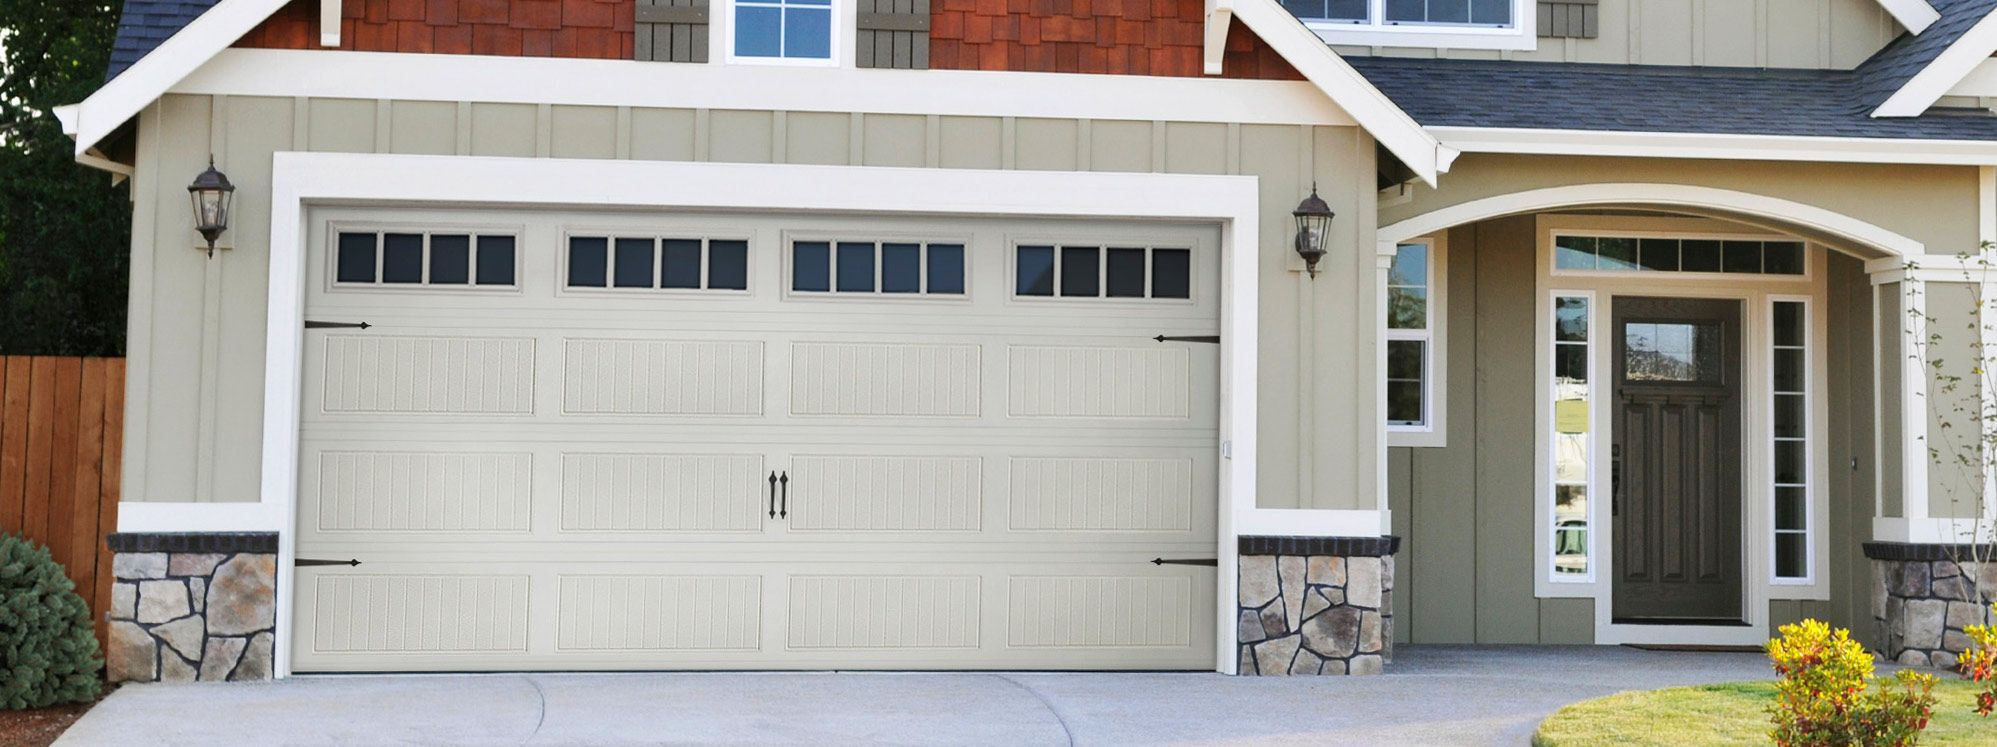 eds within window garage rapids edsage full norwalk door styles design proportions companies city ideas size x doors iowa ia cedar of